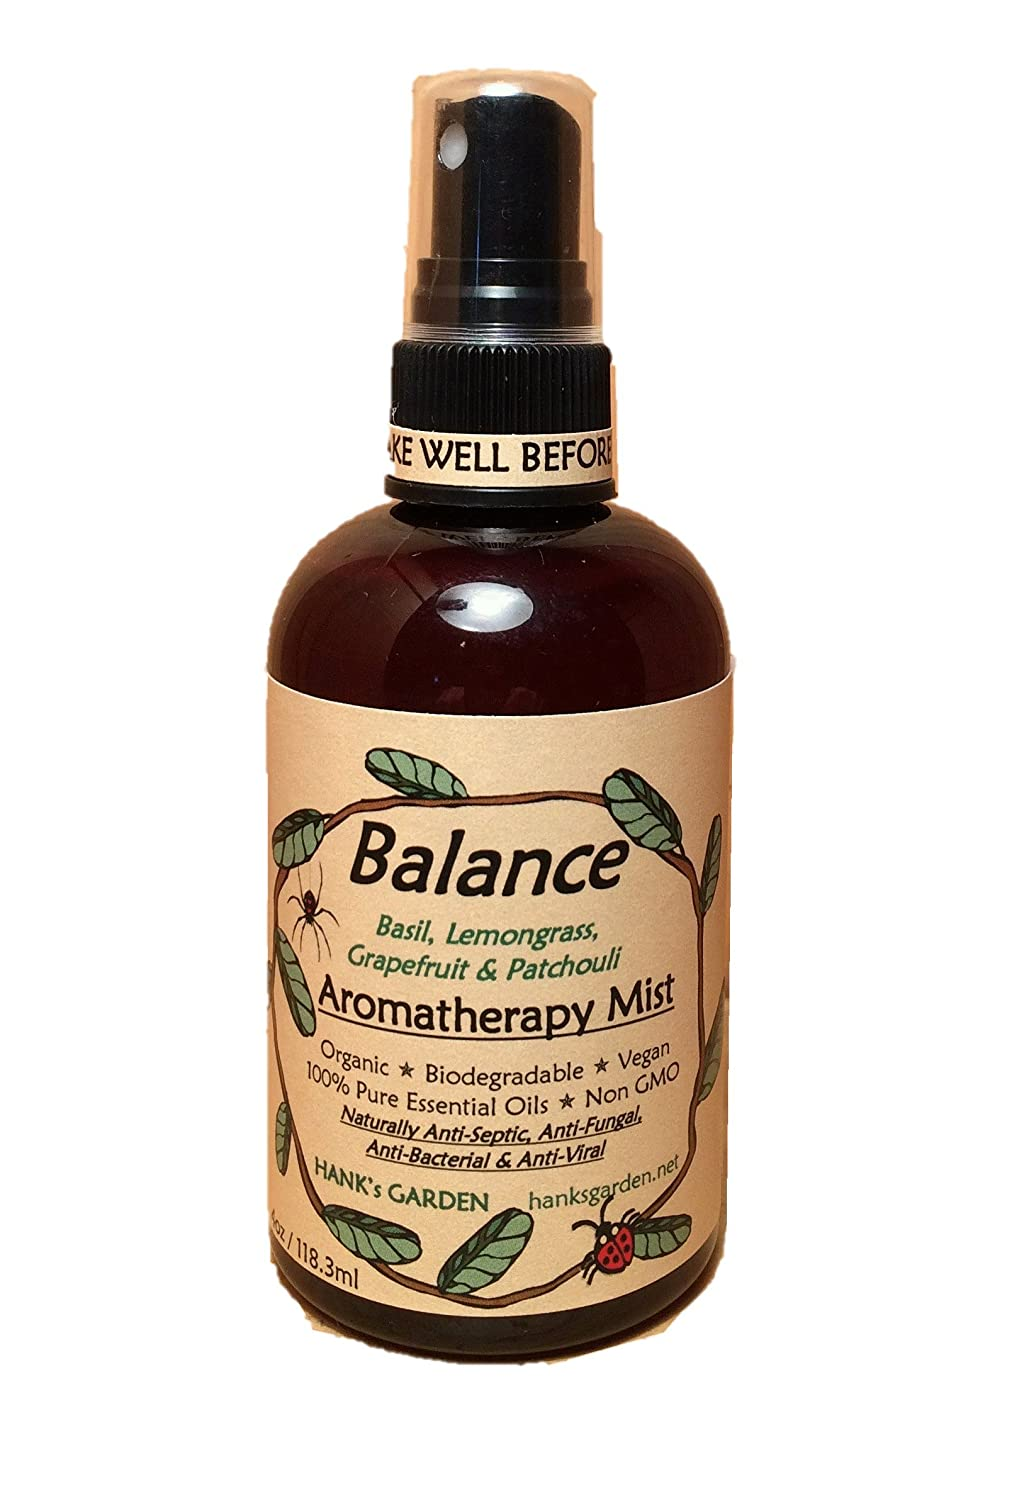 Balance Aromatherapy Body & Room Spray Mist - All Natural Earth Friendly, Vegan, Organic, Biodegradable, Non GMO - with Essential Oils of Basil, Lemongrass, Grapefruit & Patchouli (4 oz/118.3 ml) Hank's Garden